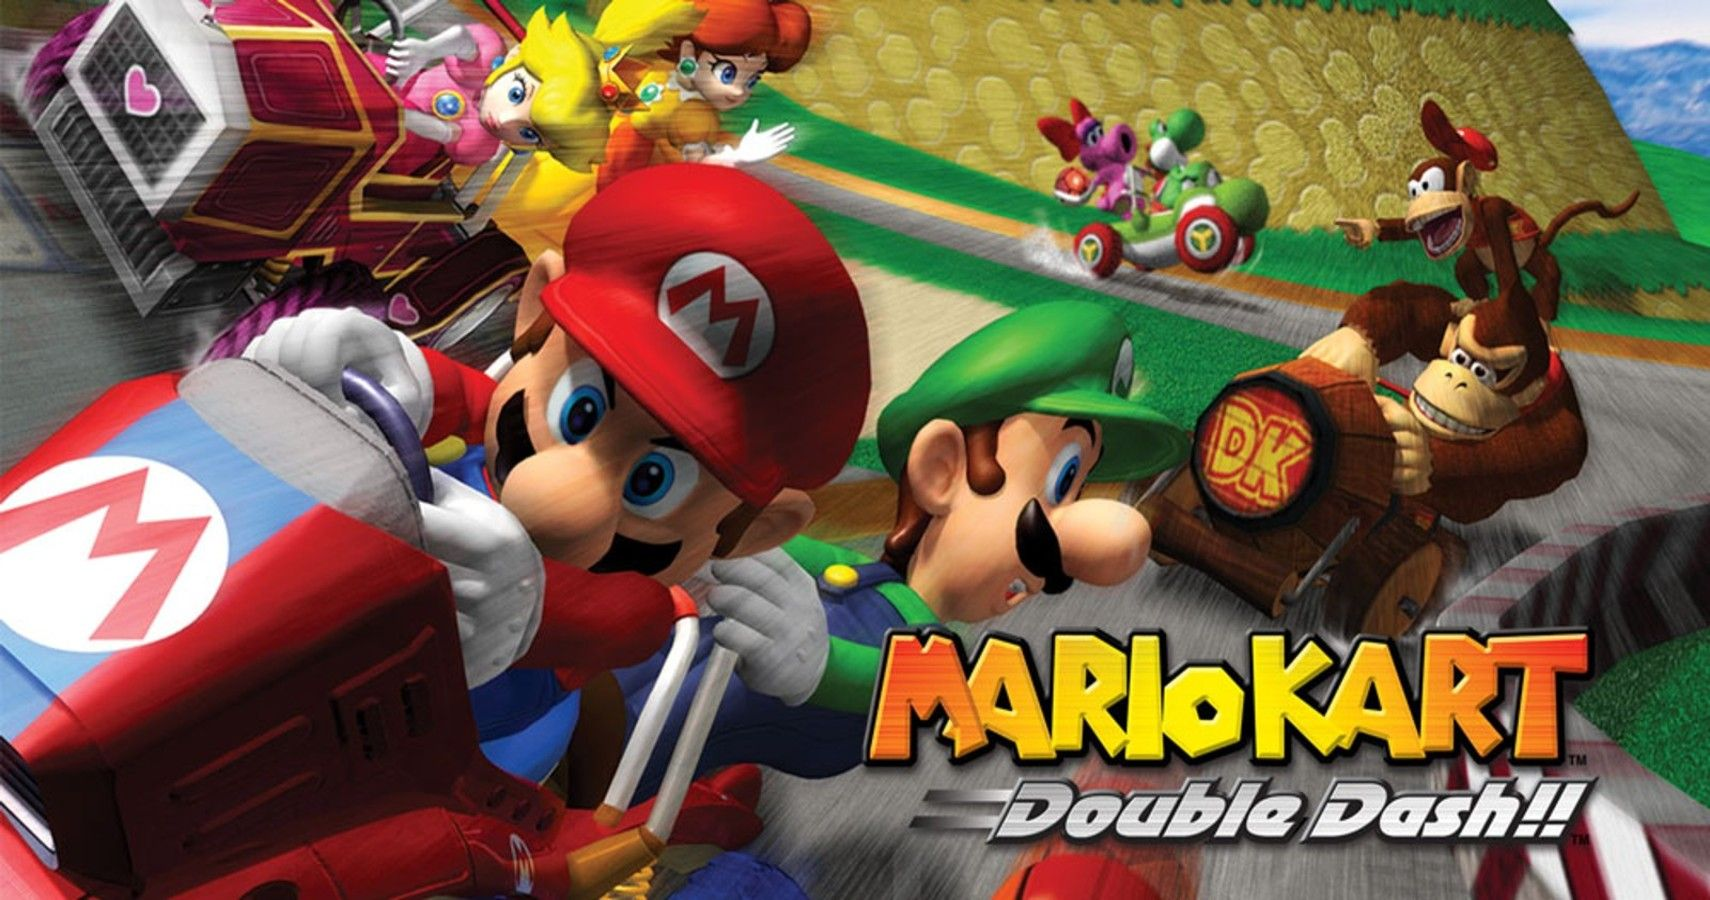 10 Best Tracks For Mario Kart Double Dash Ranked From Easiest To